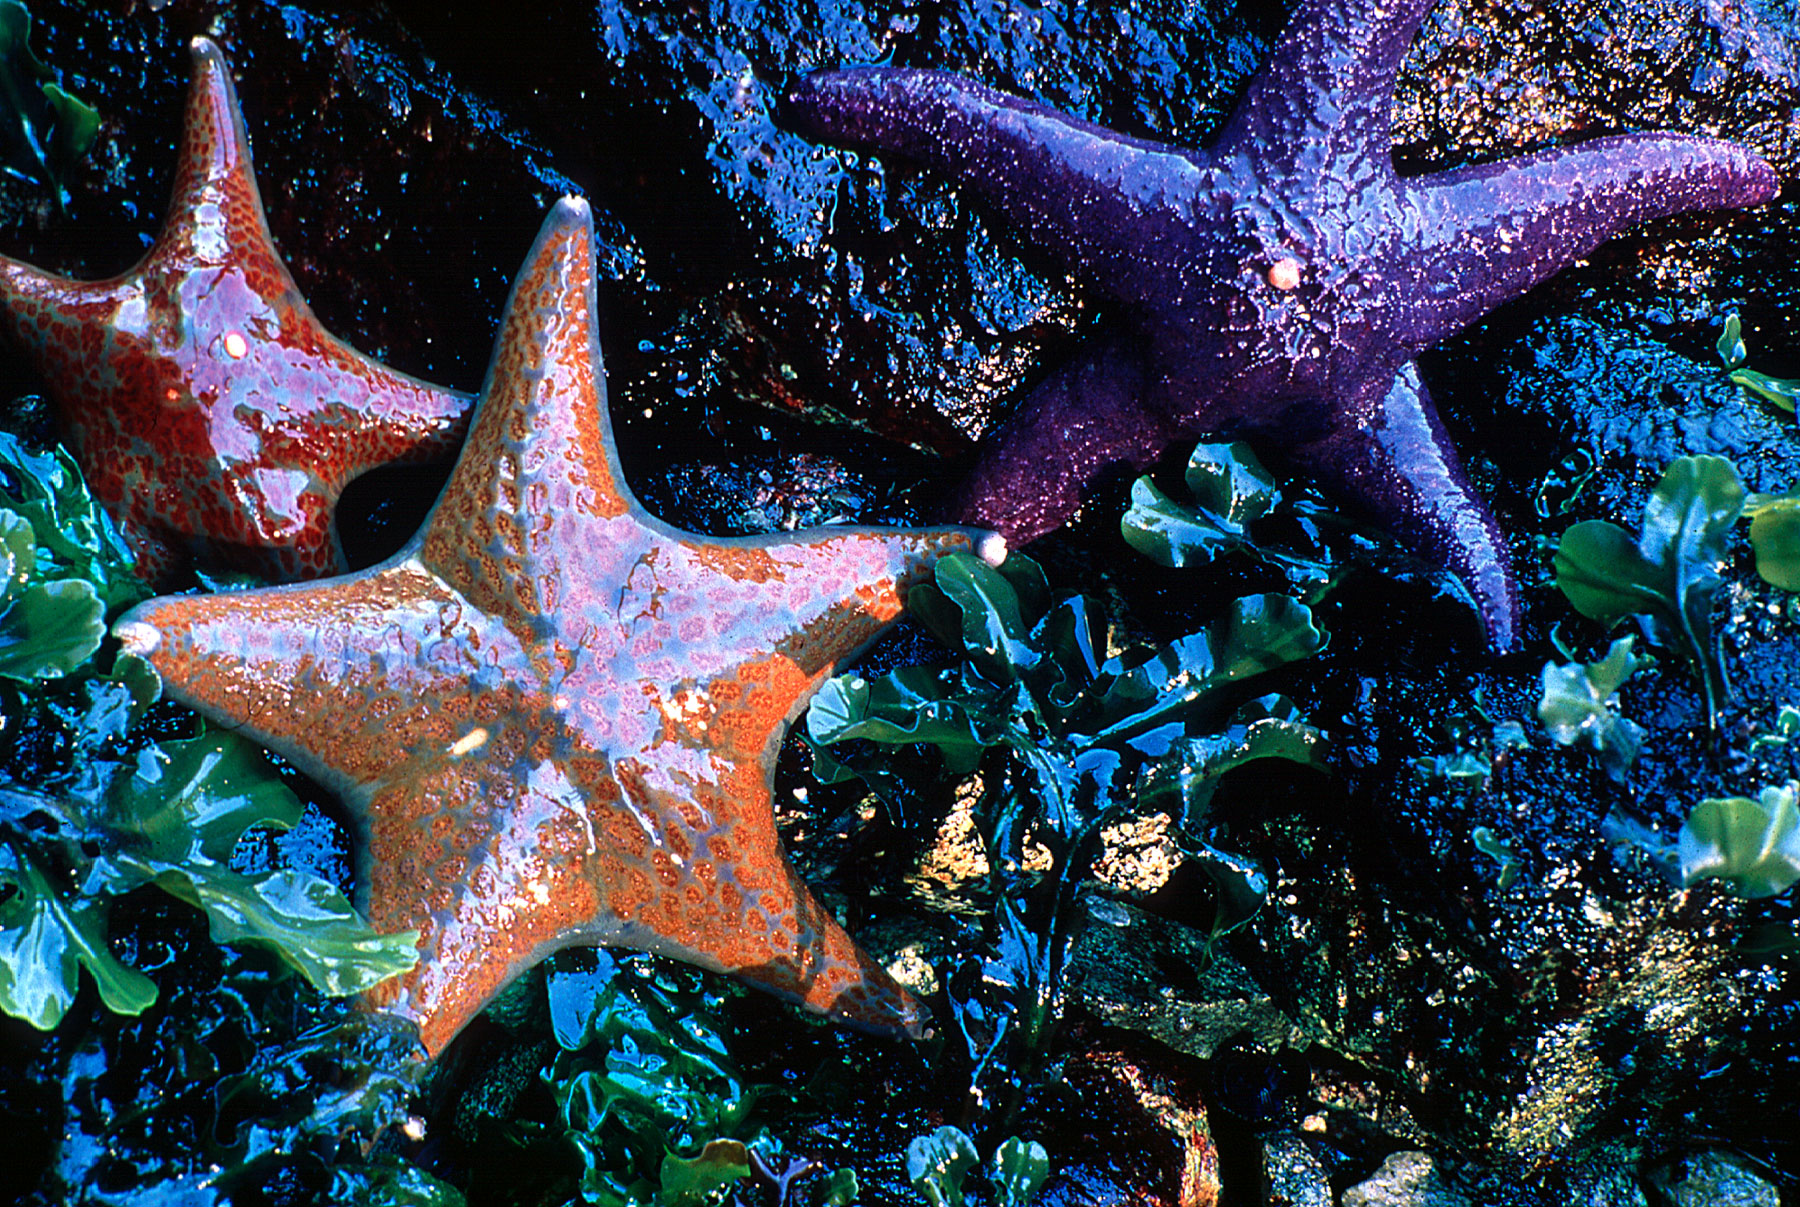 When the tide is out, the rocky shores of Gulf of the Farallones National Marine Sanctuary reveal hundreds of invertebrates, like these sea stars. (Courtesy of Joe Heath)